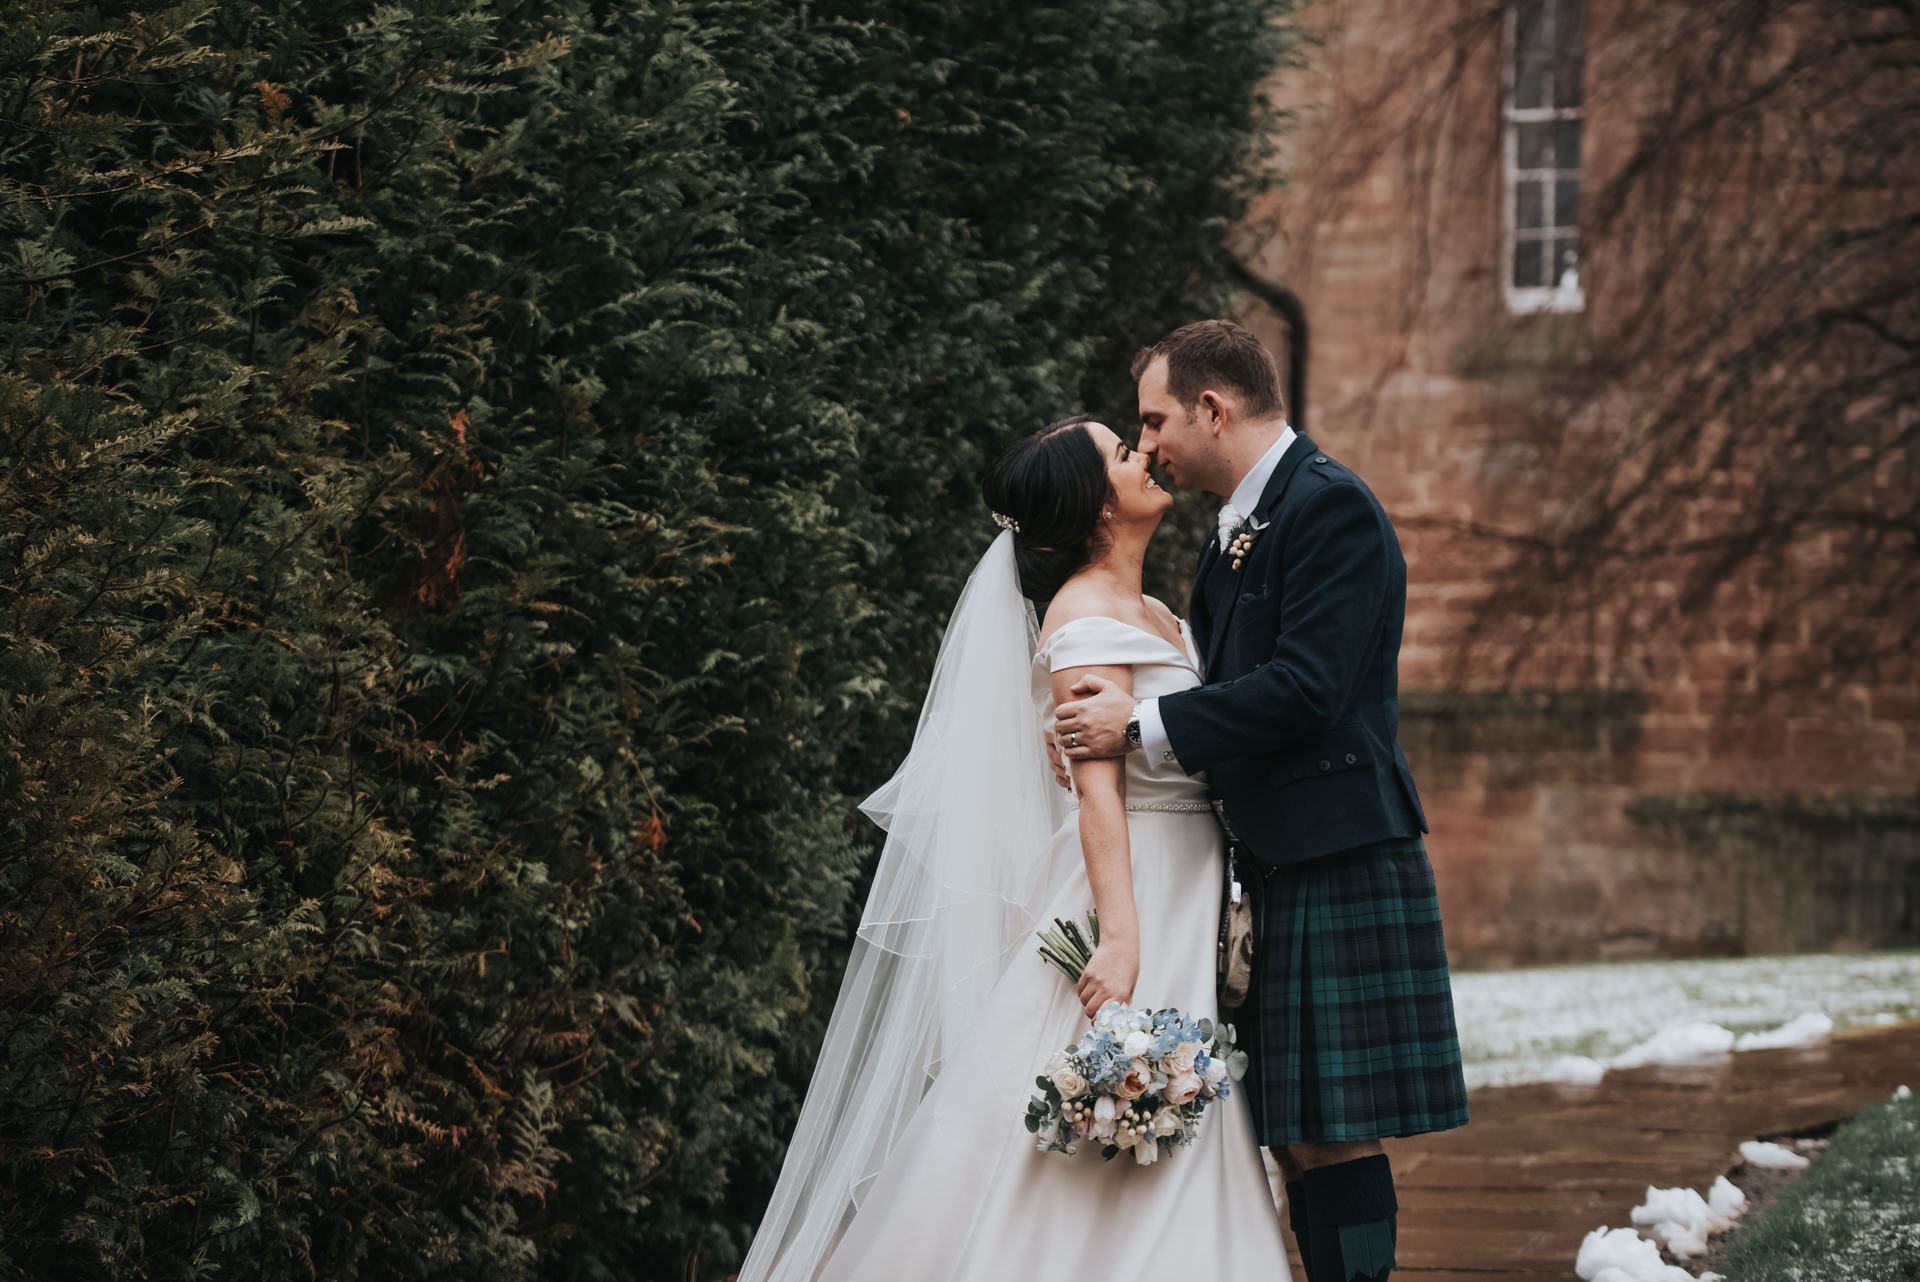 wedding photos Dalhousie Castle, wedding photographer Dalhousie Castle, wedding photographer Edinburgh, wedding photographer Glasgow, wedding photographer Scotland, Karol Makula Photography